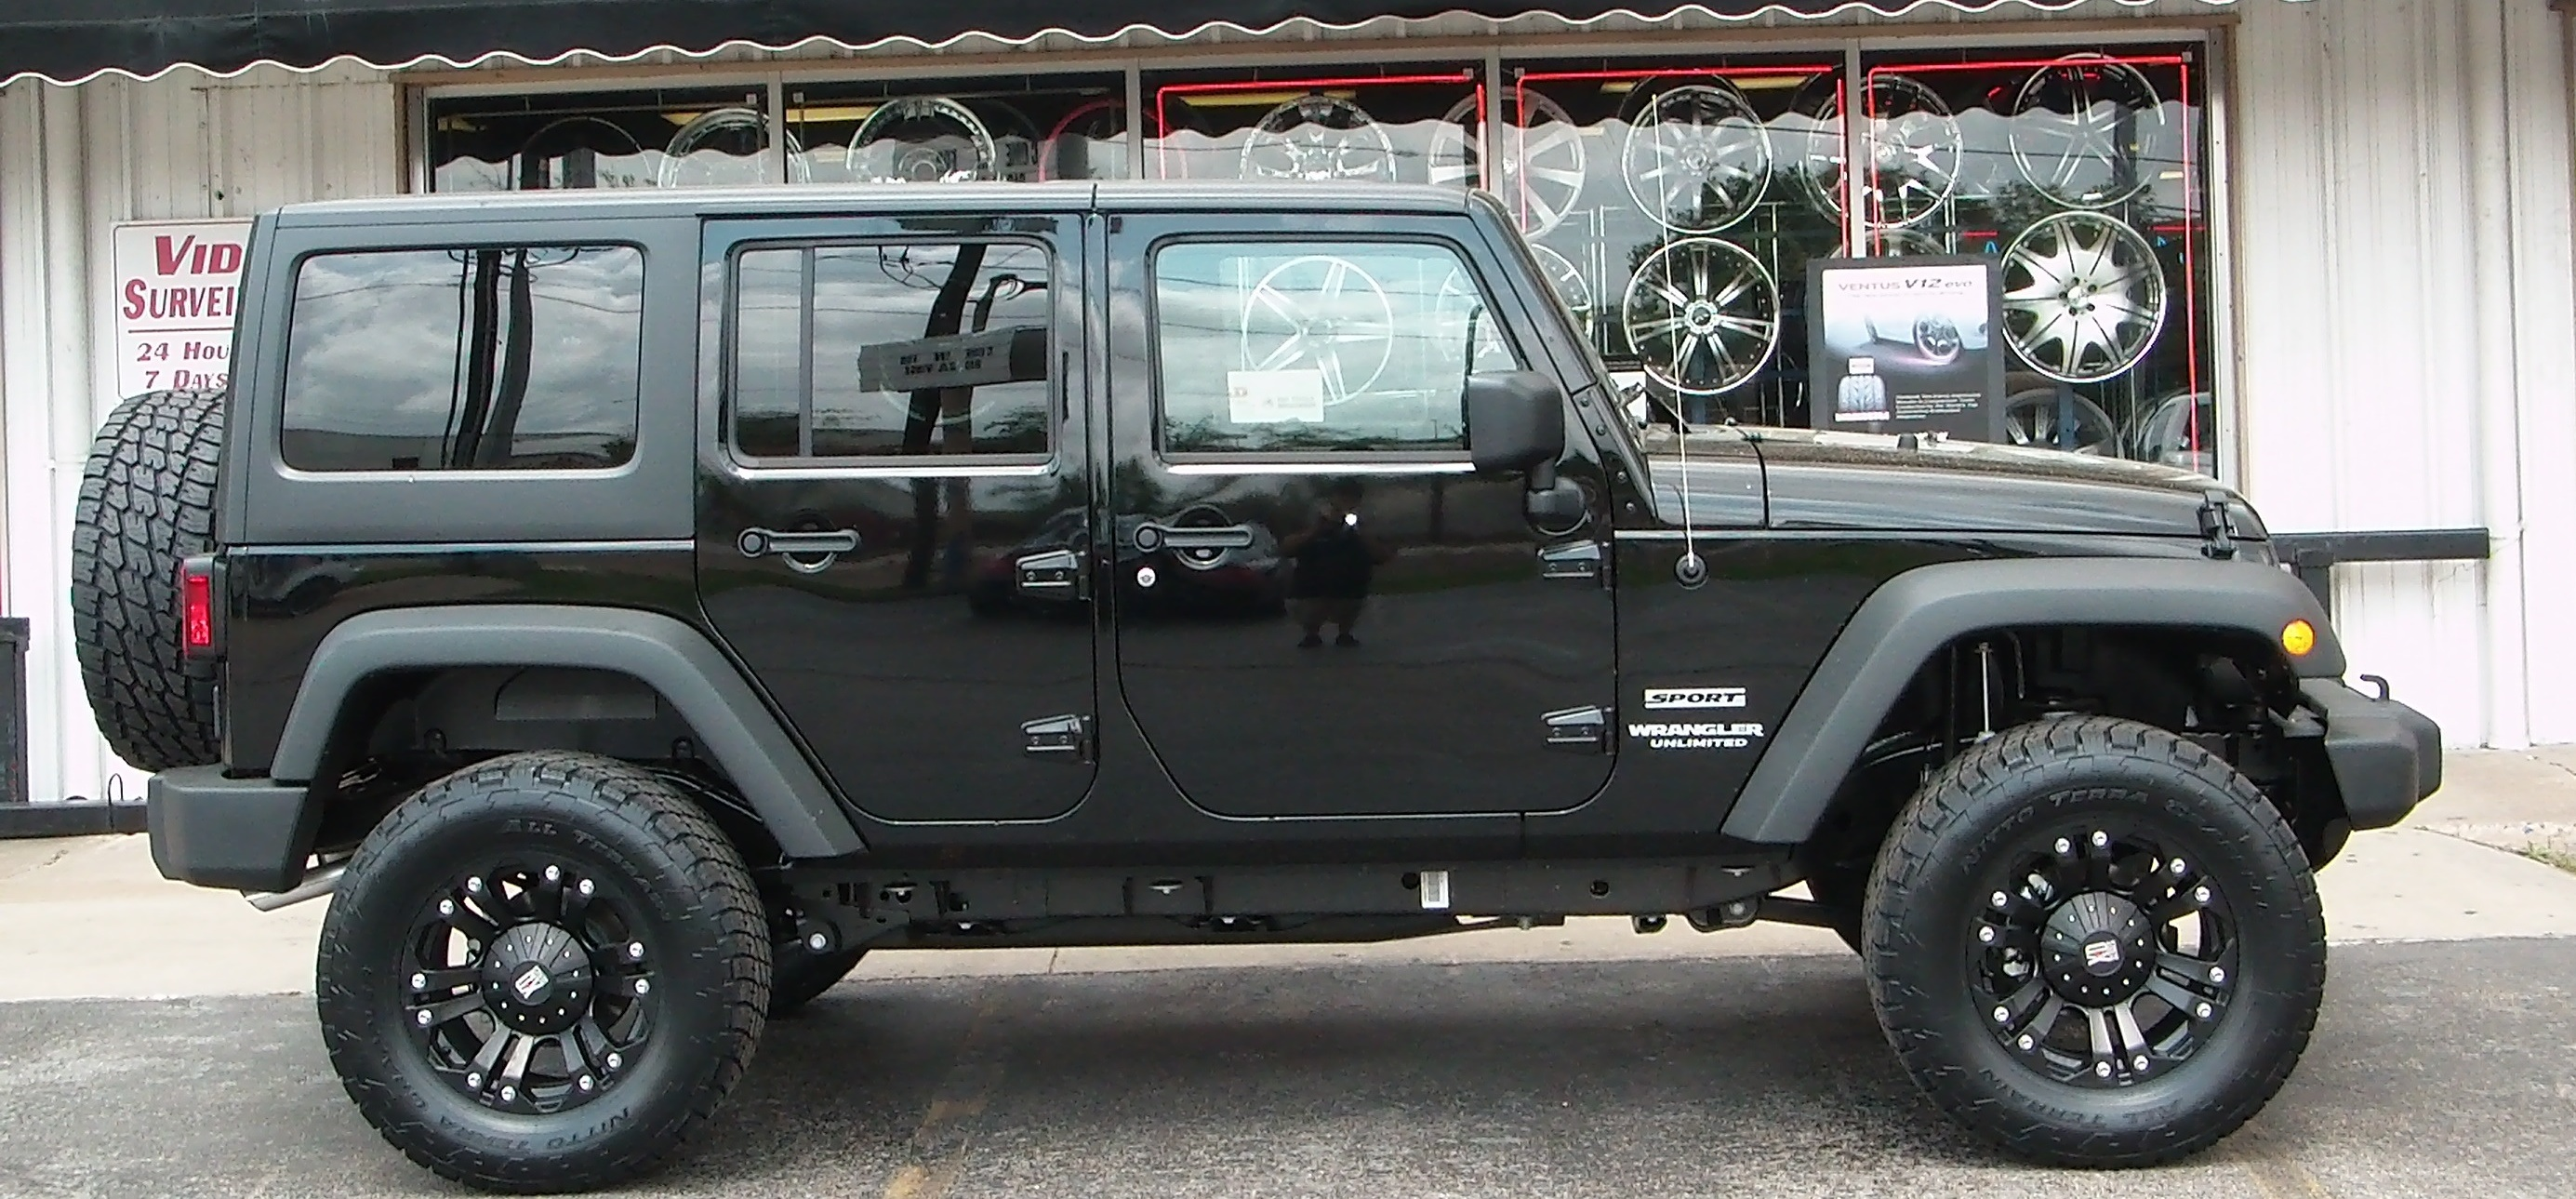 jeep wrangler unlimited technical details history photos on better. Cars Review. Best American Auto & Cars Review